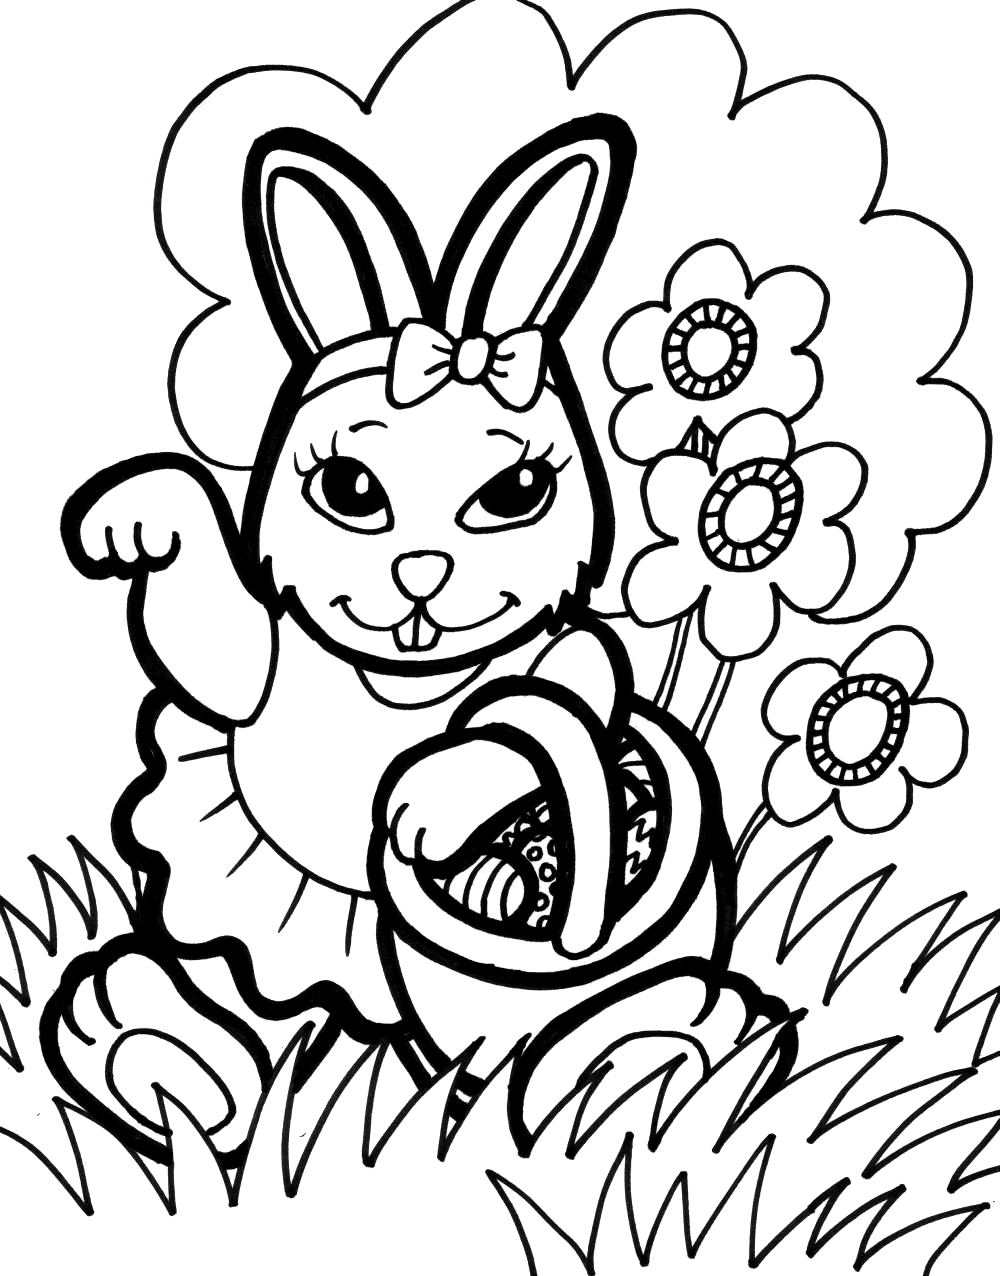 rabbit pictures for kids for colouring rabbit free to color for children rabbit kids coloring pages colouring kids for rabbit for pictures